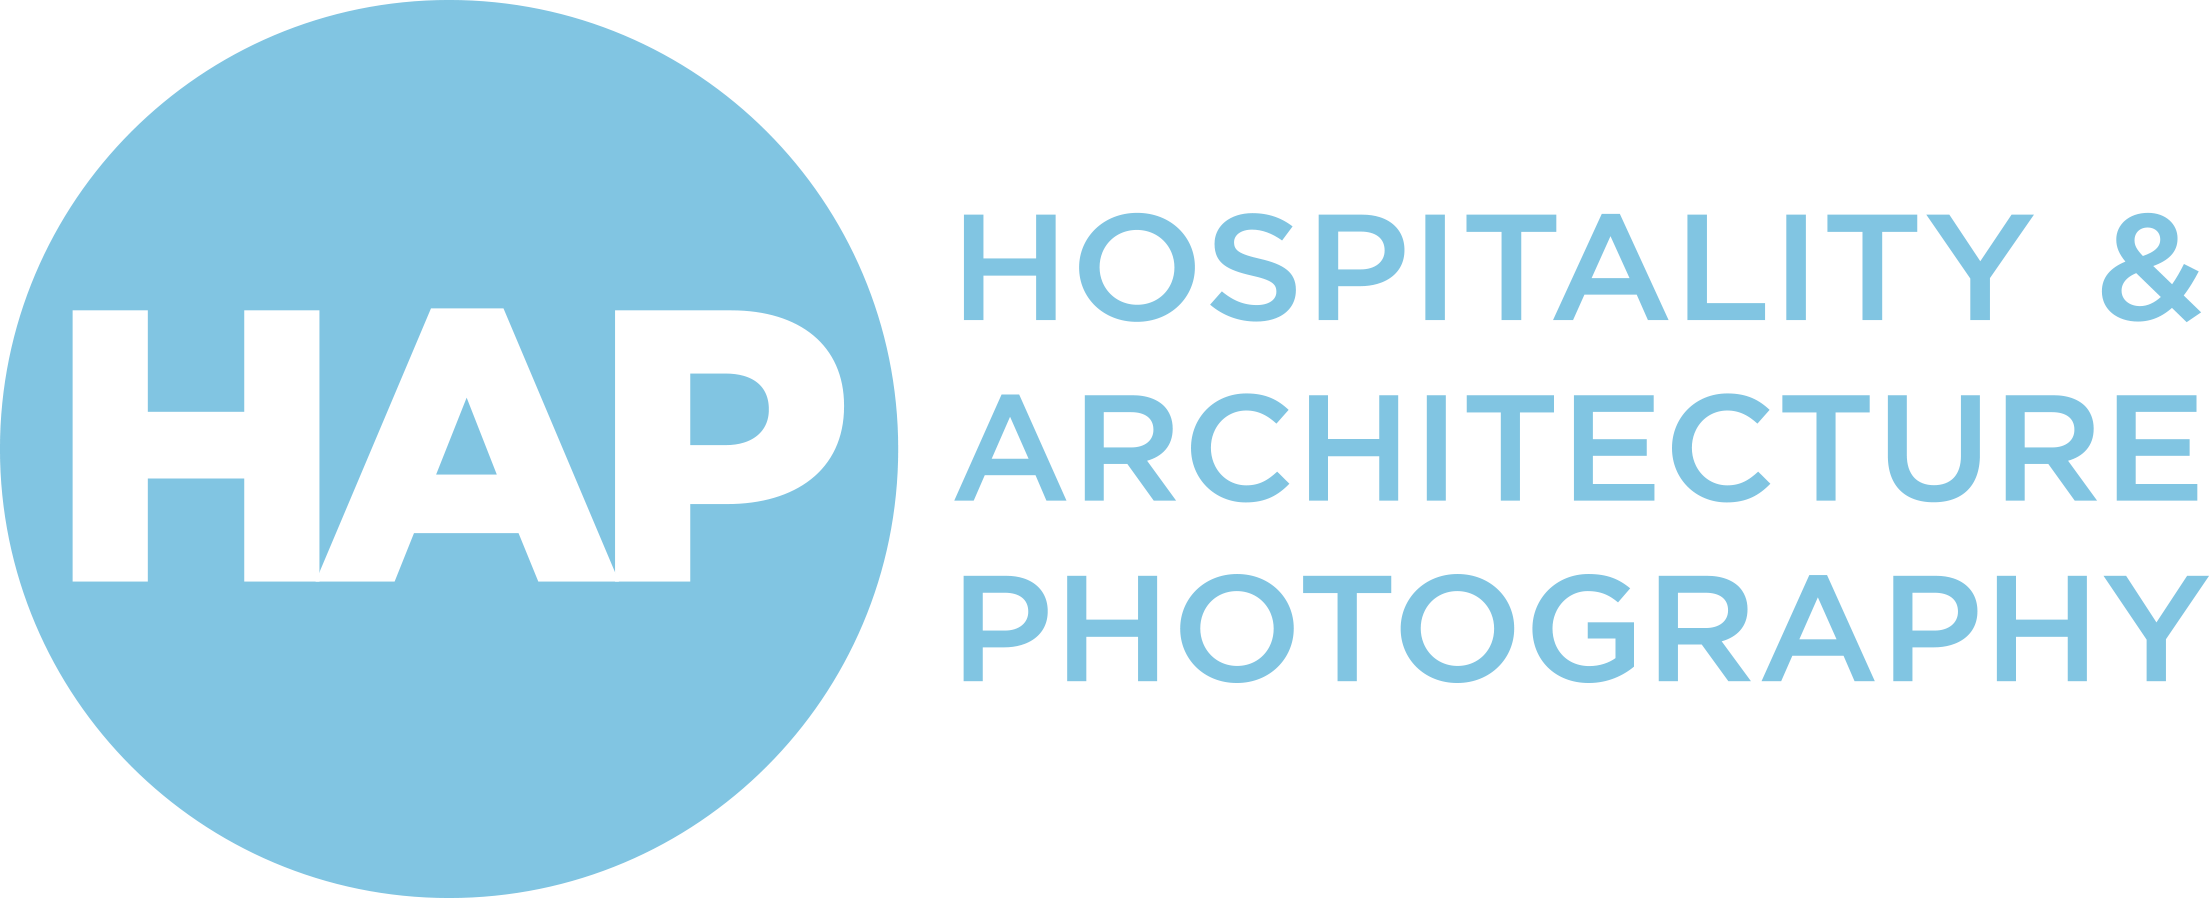 Hospitality & Architecture Photography